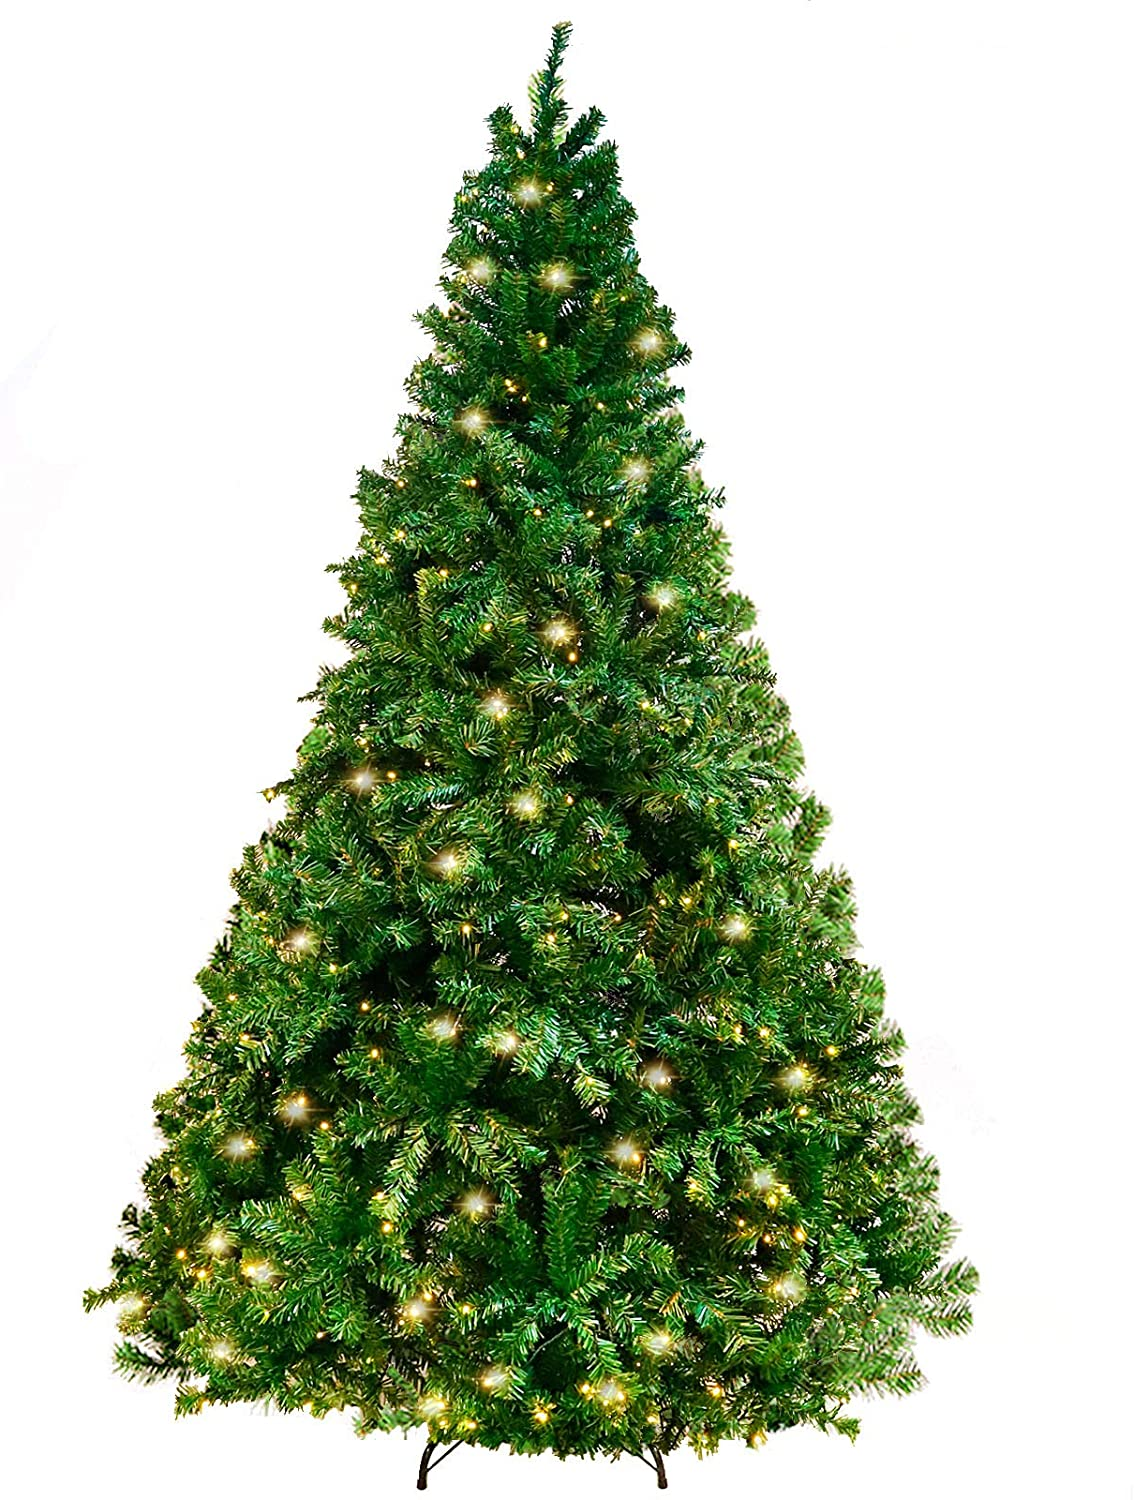 Isbasa 7.5 Feet Artificial Christmas Tree 1800 Tips with 600 Lights for Home Party Holiday Decoration